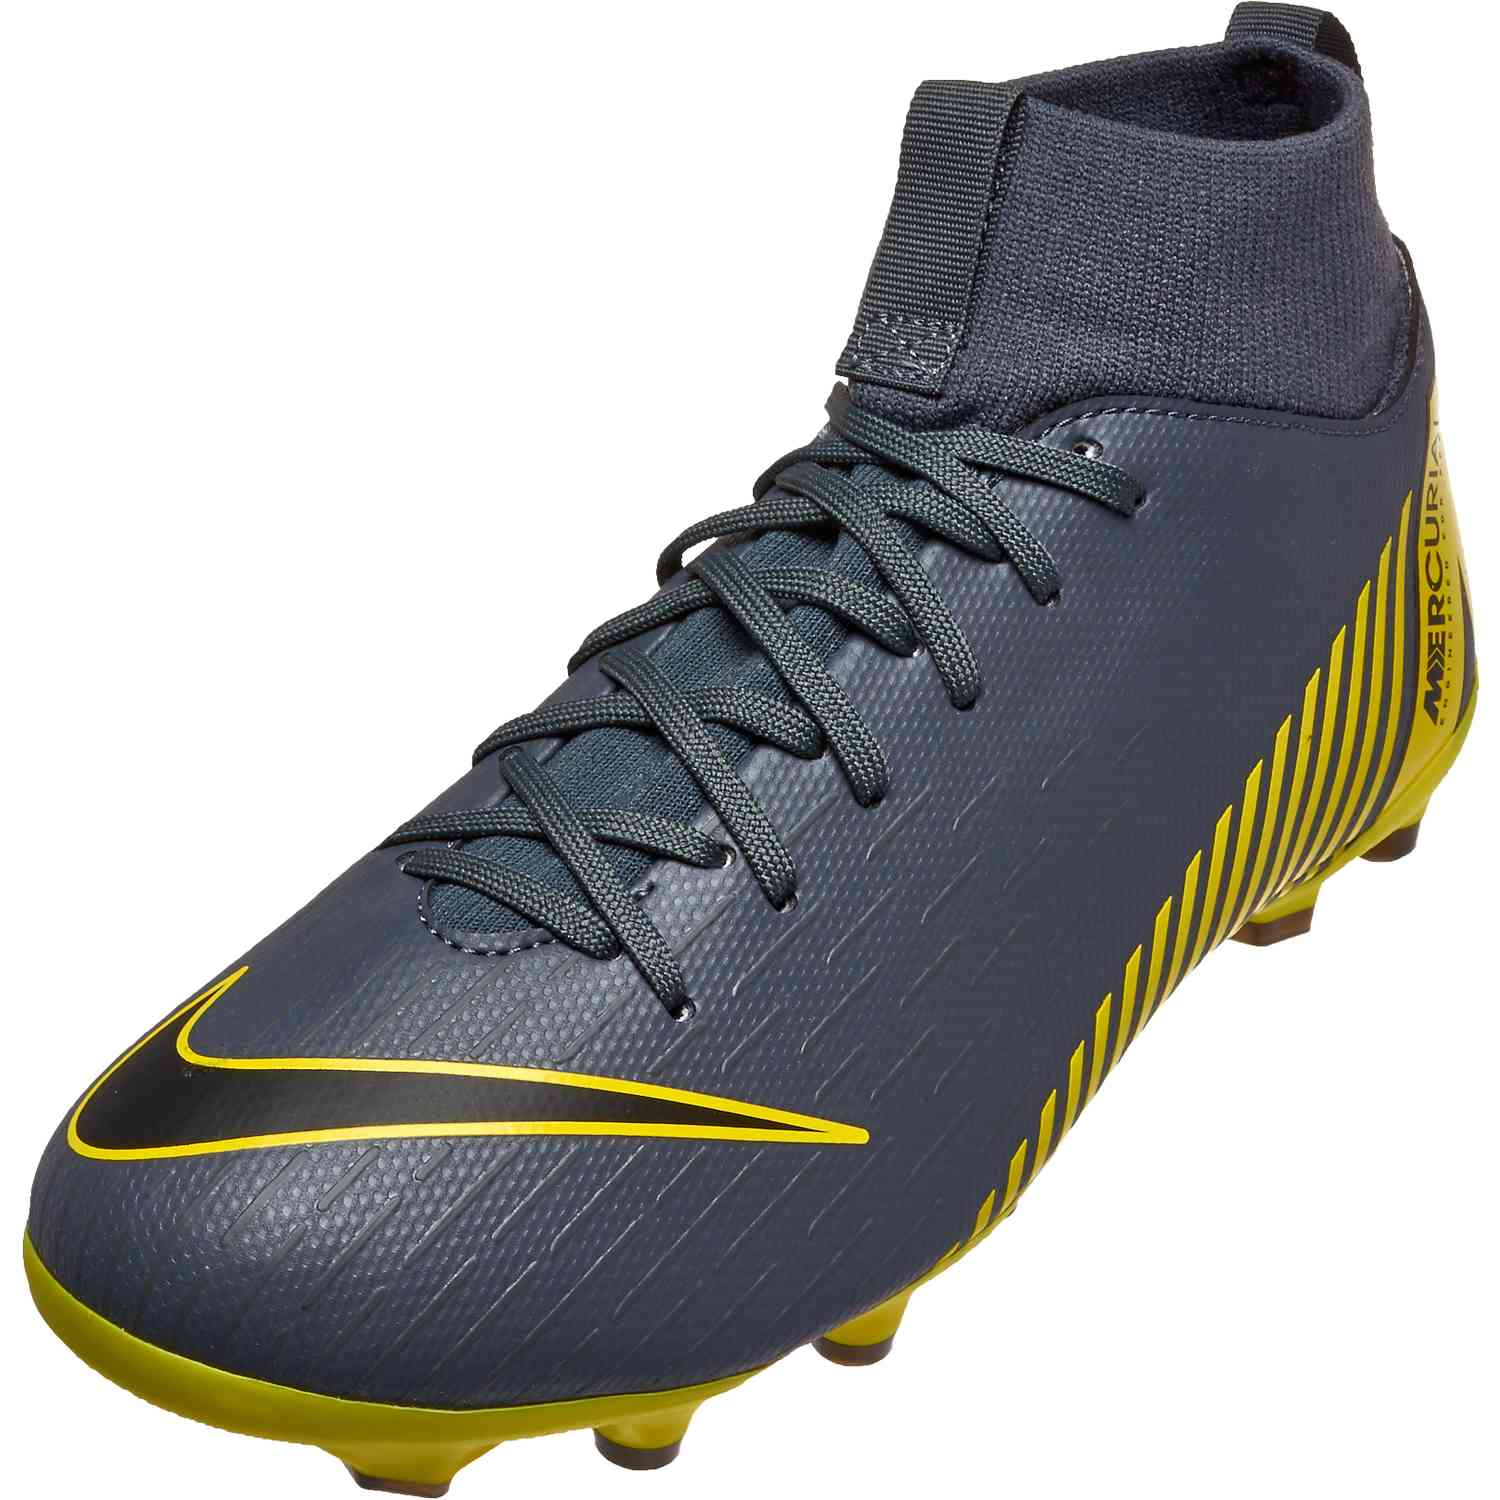 80cb8a828 Kids Nike Mercurial Superfly 6 Academy FG - Game Over - SoccerPro